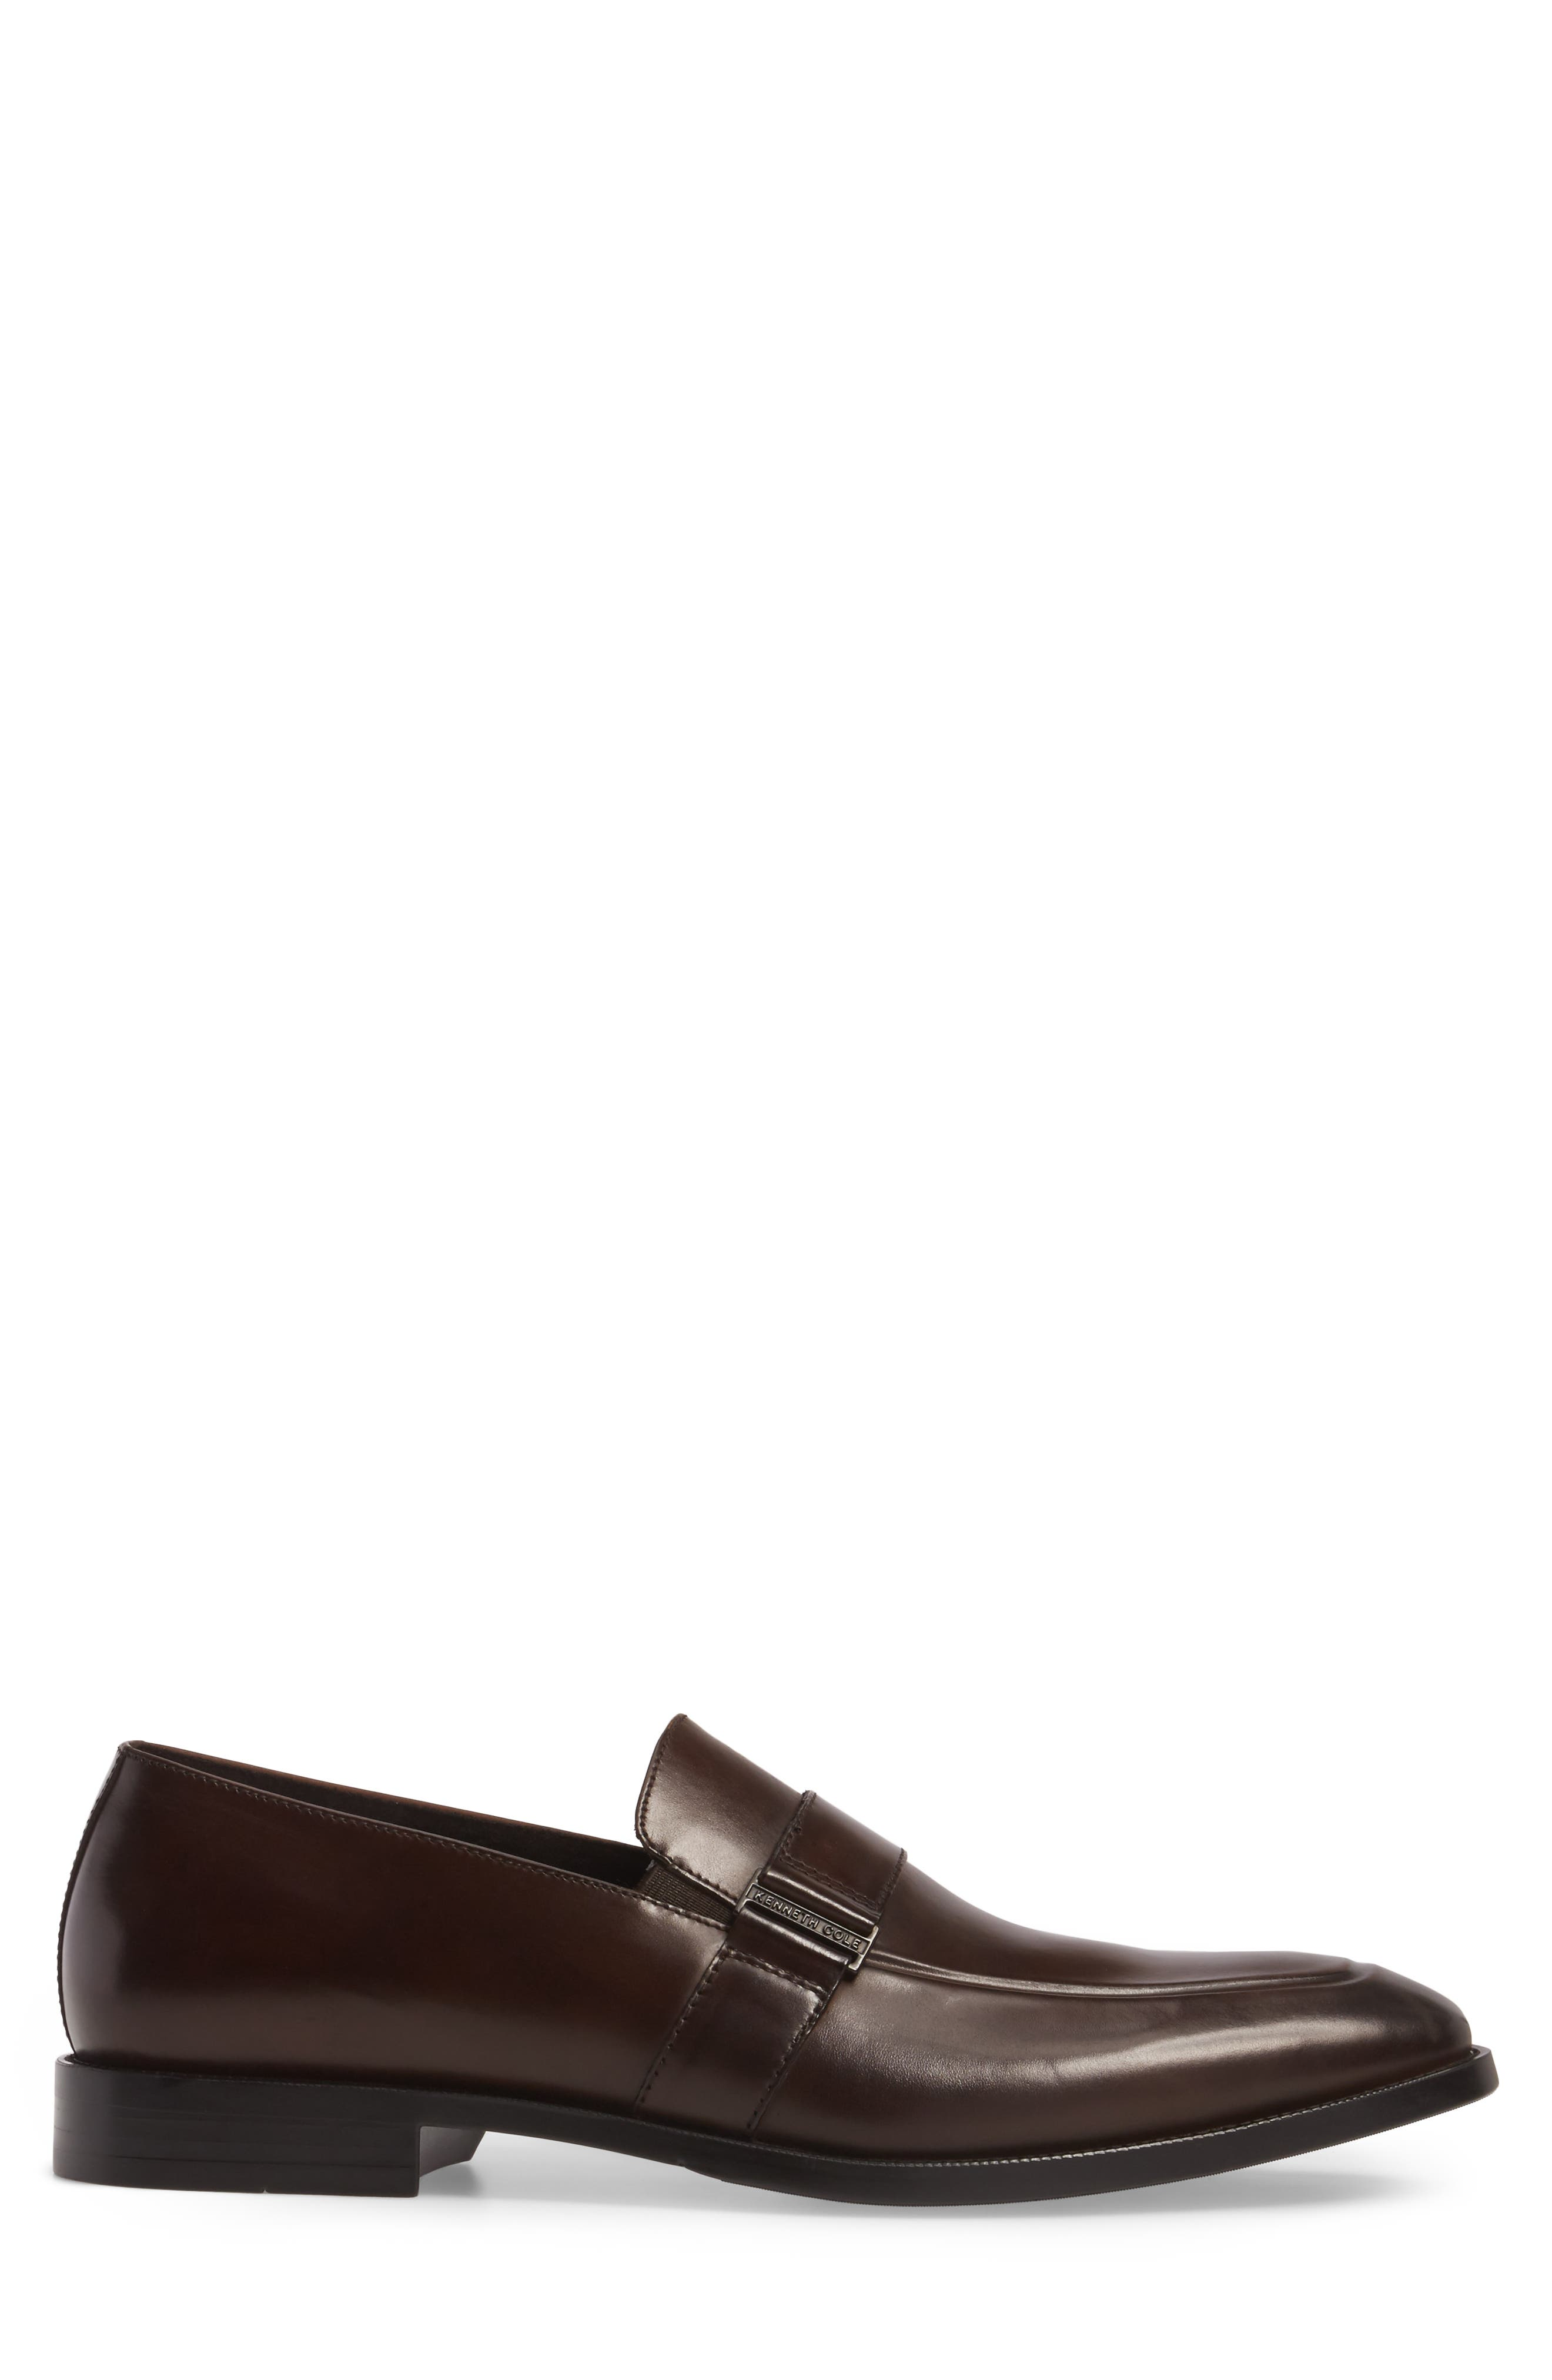 Apron Toe Loafer,                             Alternate thumbnail 3, color,                             Brown Leather